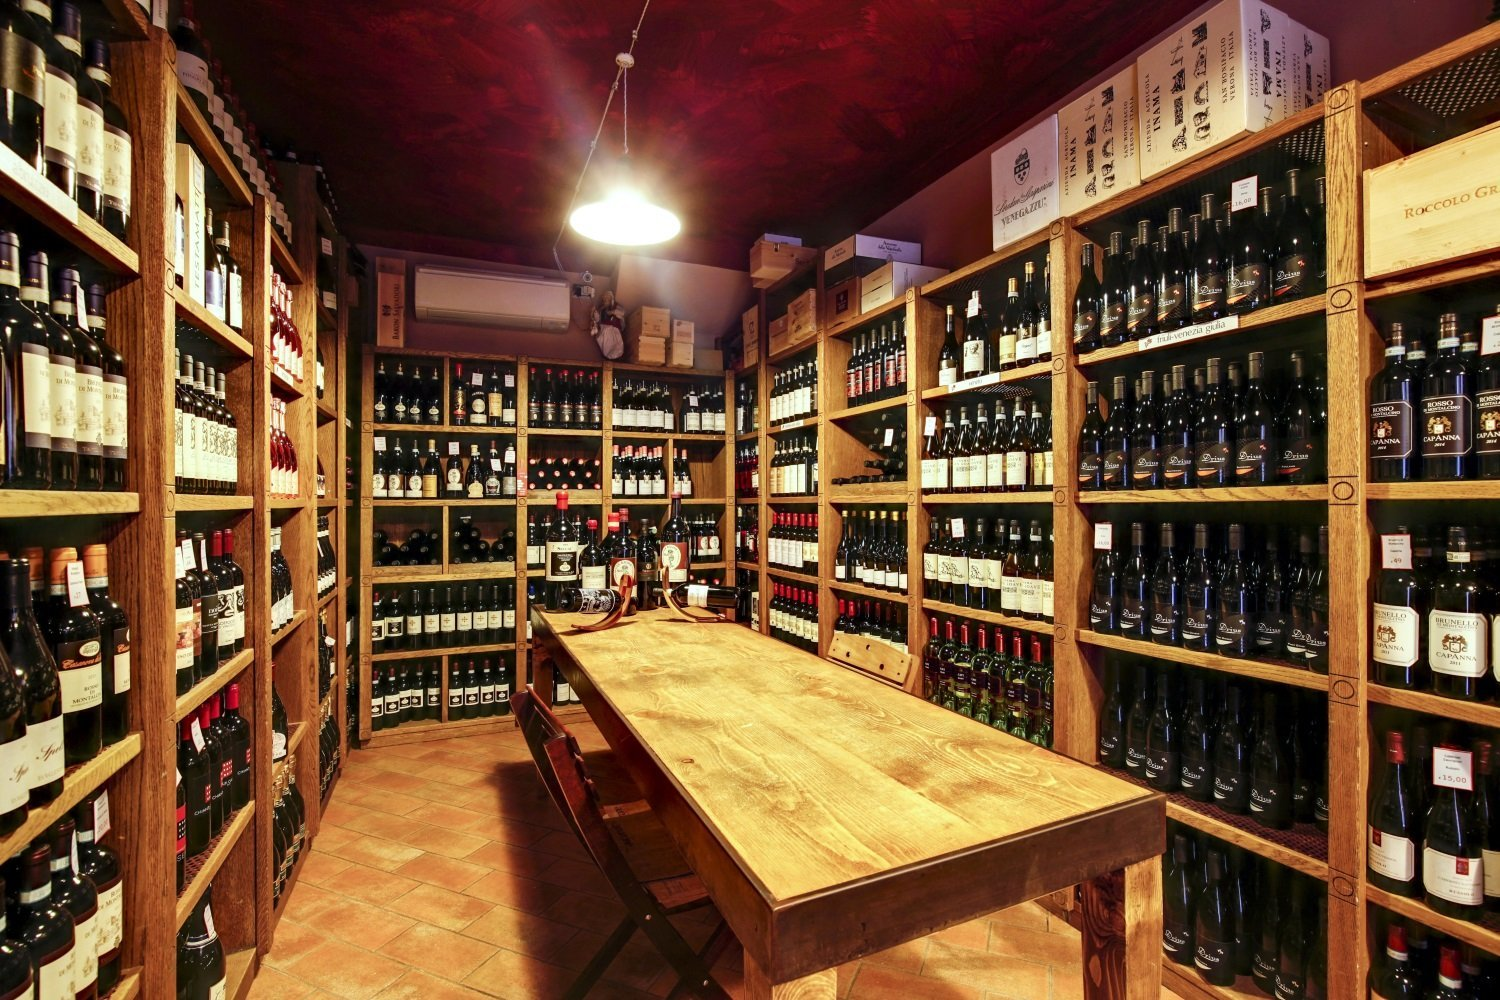 The Wine Shop of Vineria all'Amarone